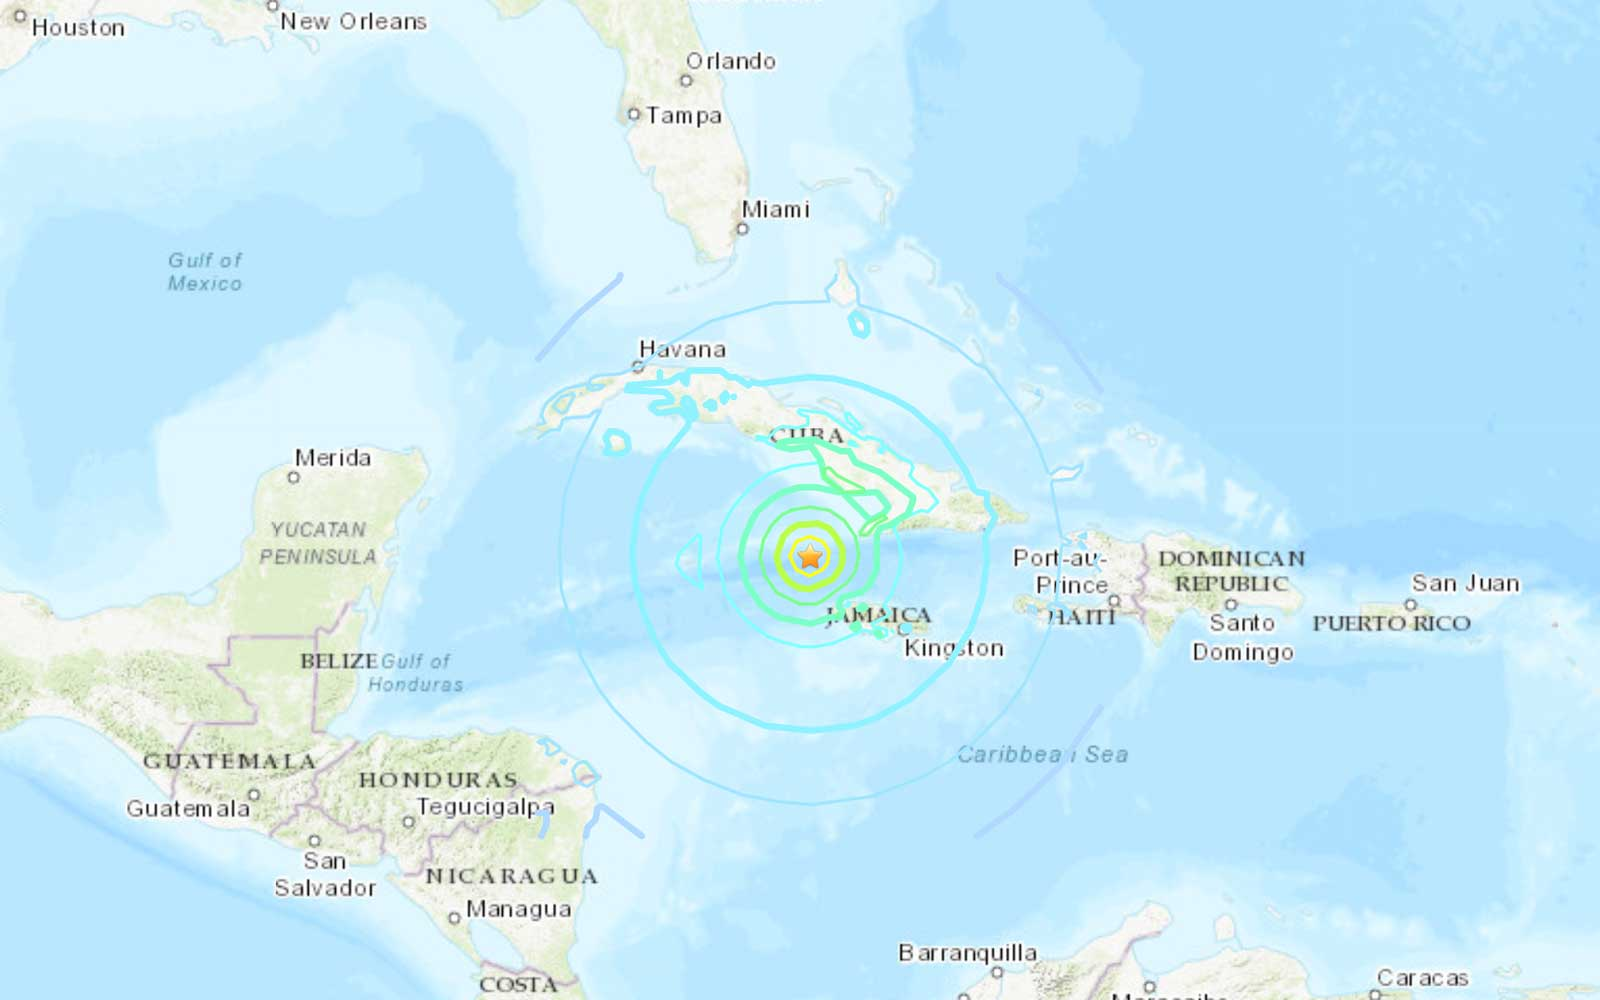 Map via USGS of 7.7 Magnitude Earthquake the hit between Jamaica and Cuba on January 28, 2020.